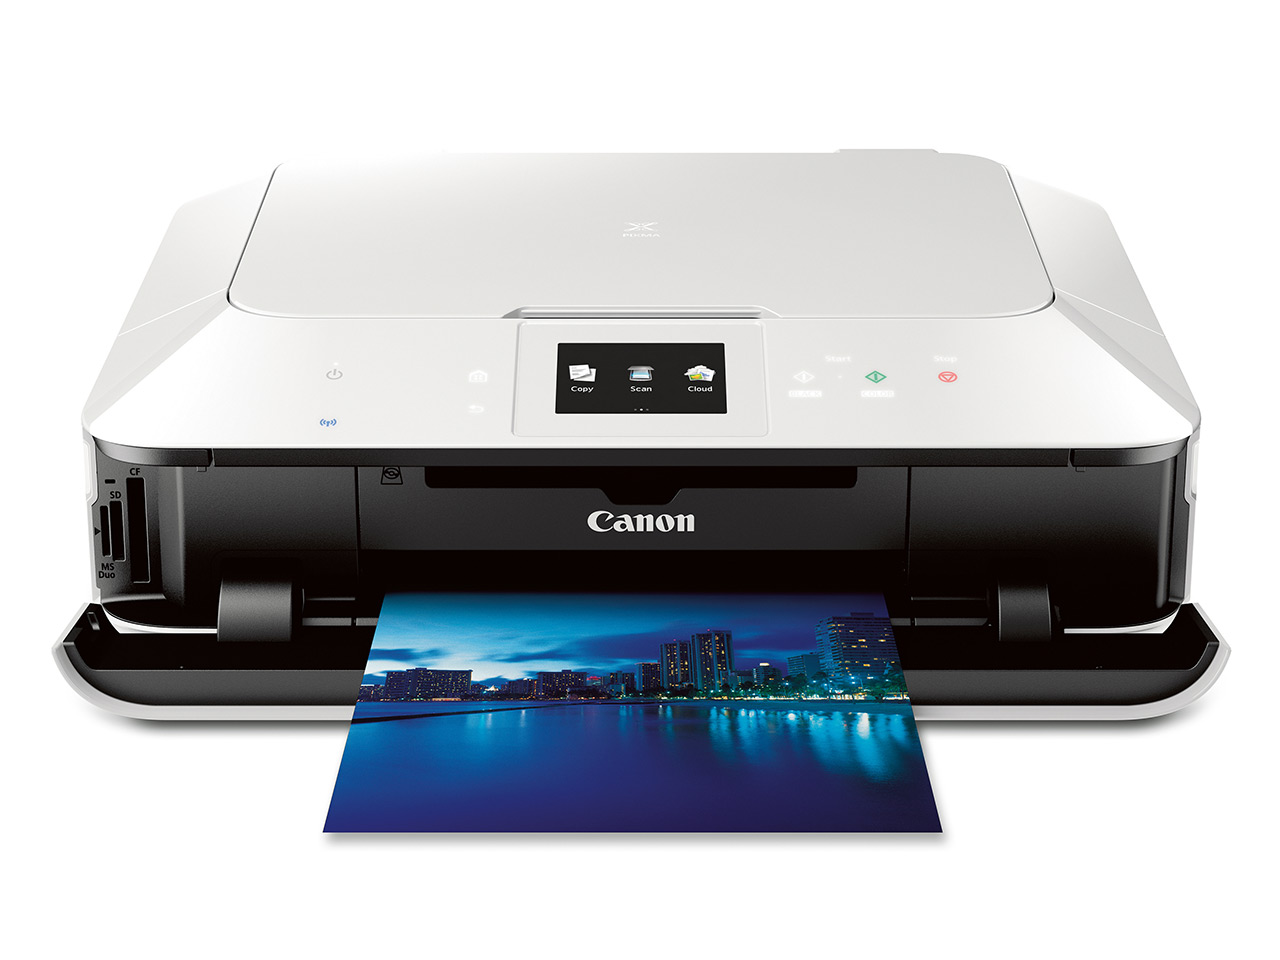 canon adds pixma mg7120 and mg5520 all in one printers. Black Bedroom Furniture Sets. Home Design Ideas